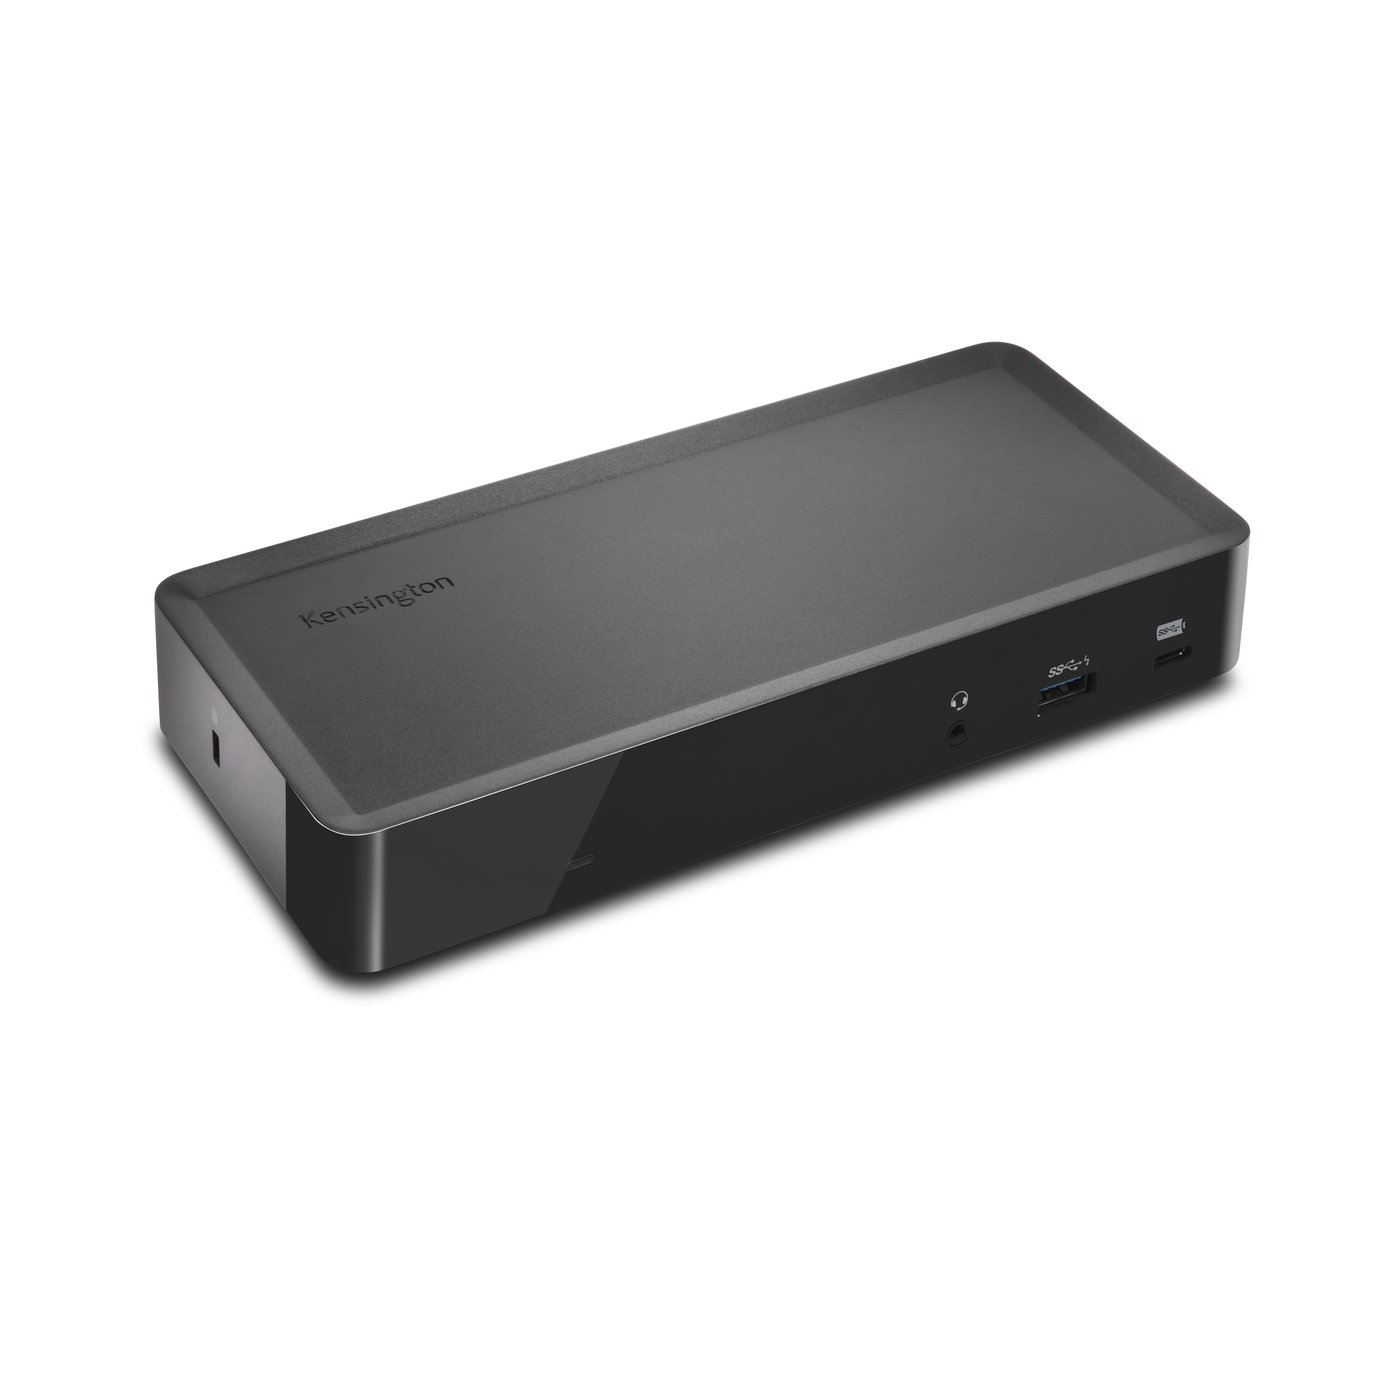 Kensington Replicador USB-C y USB 3.0 2K de 5 Gbps doble SD4700P con adaptador 135 W - DP y HDMI - Windows/Mac